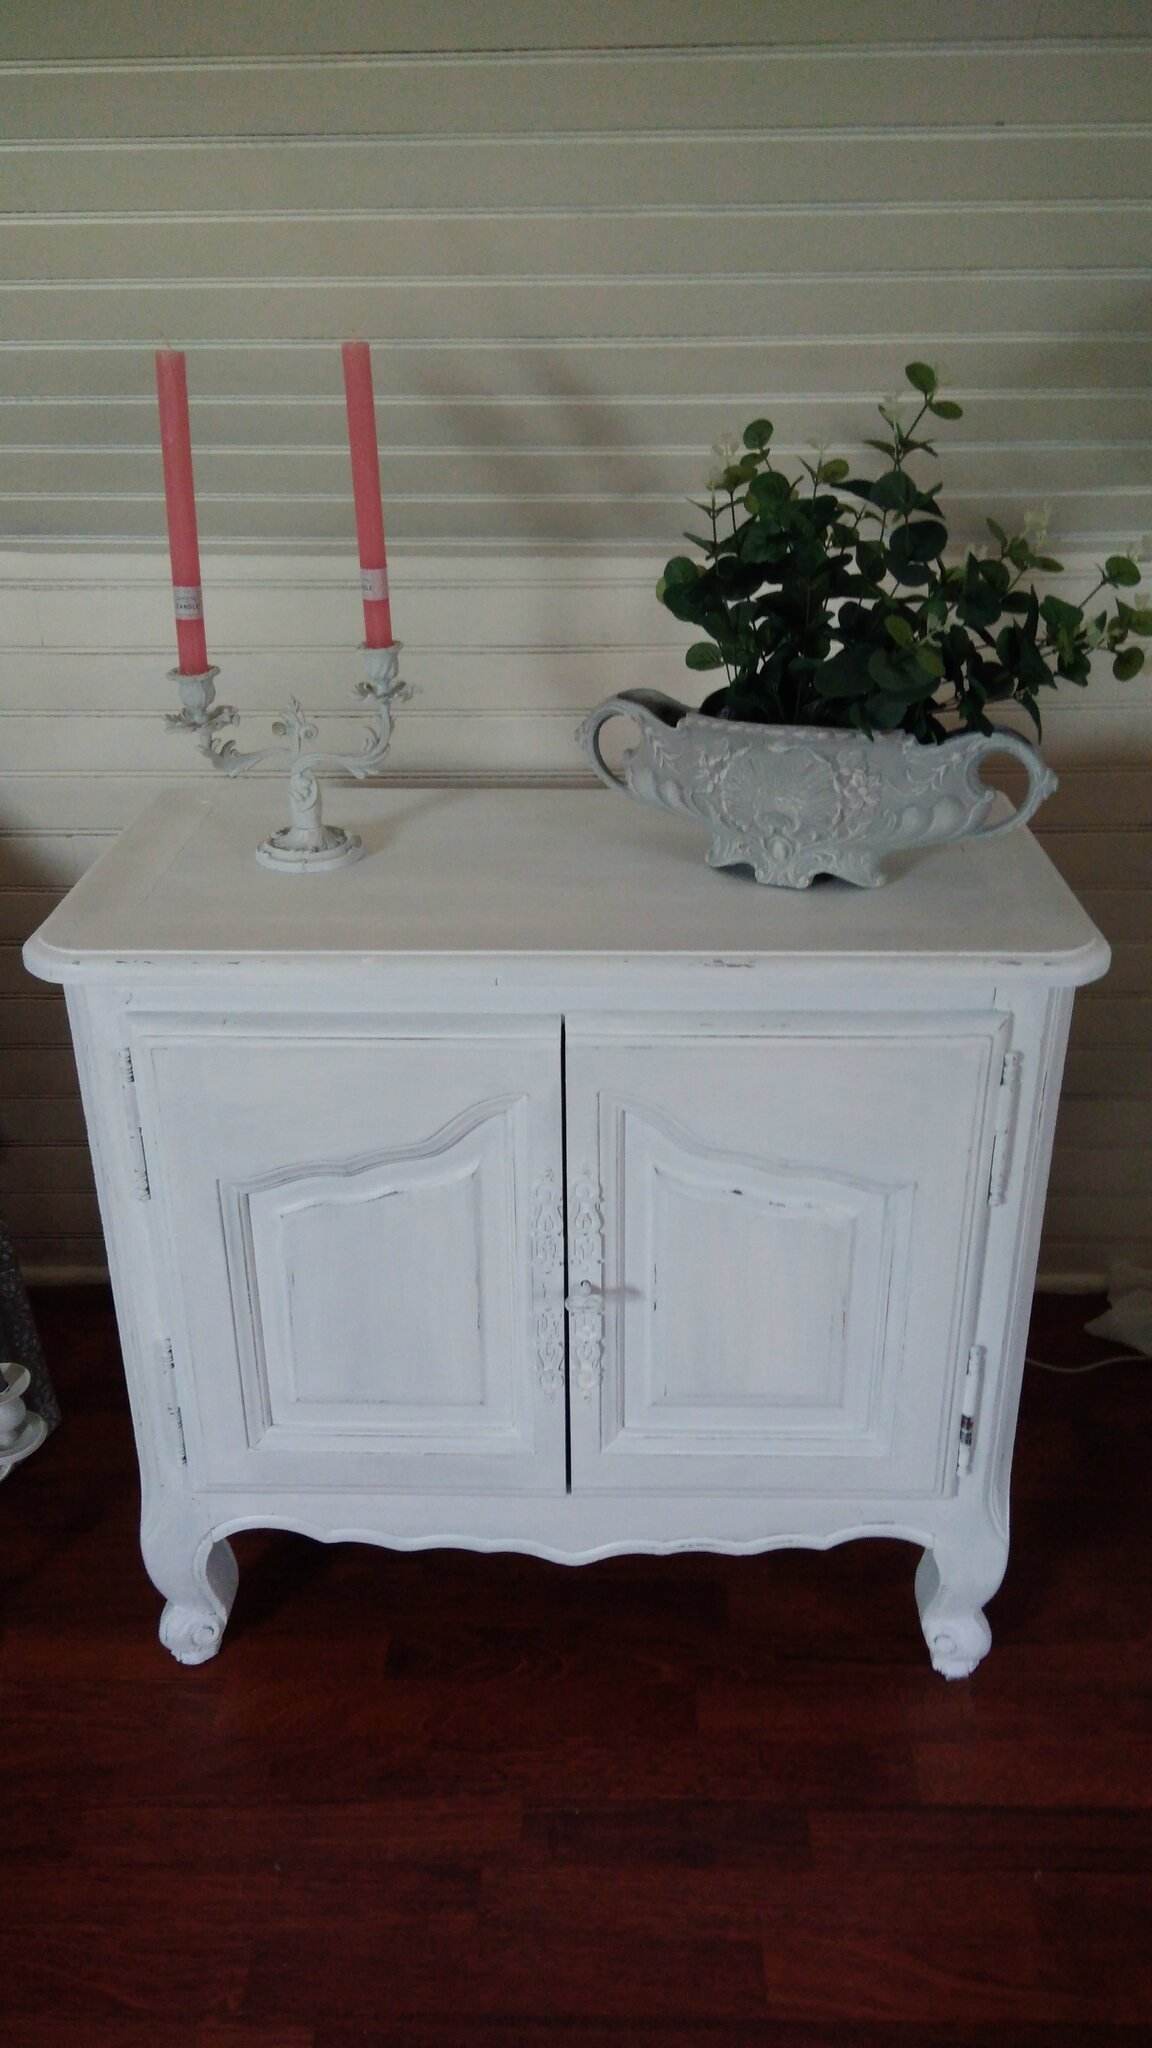 buffet meuble ancien patin blanc poudr caresse du temps. Black Bedroom Furniture Sets. Home Design Ideas